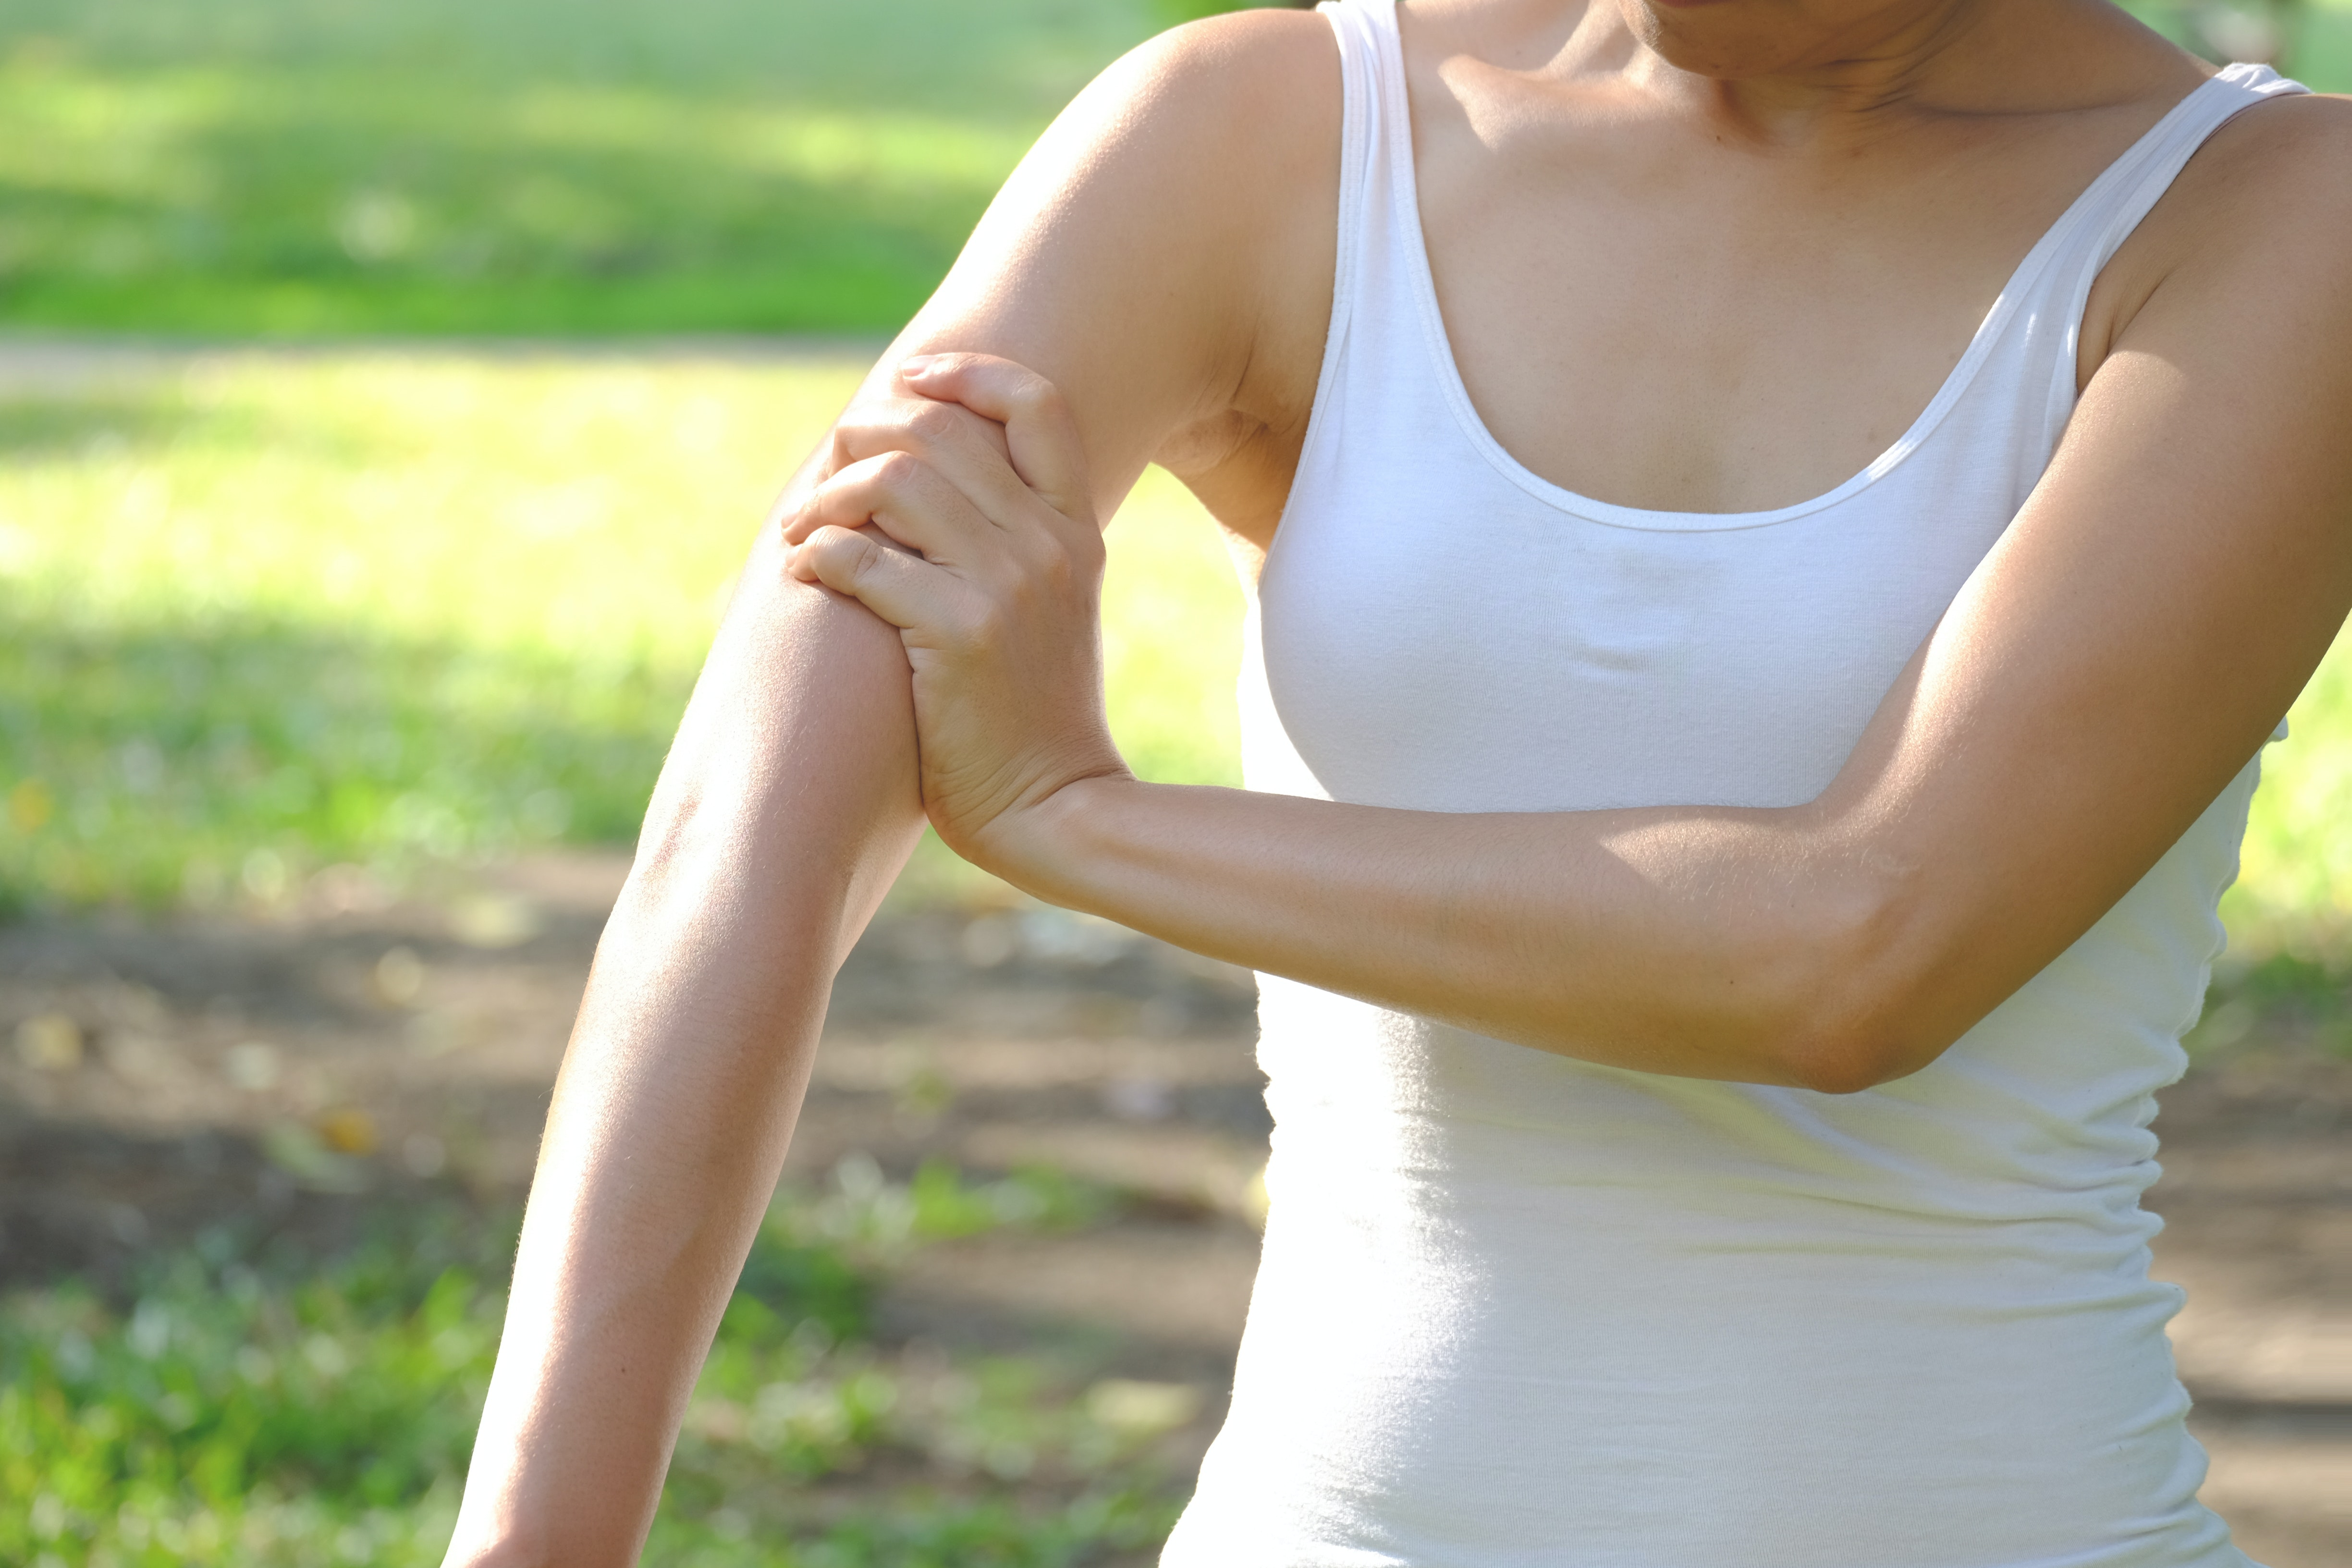 An image depicting a person suffering from severe bicep pain symptoms